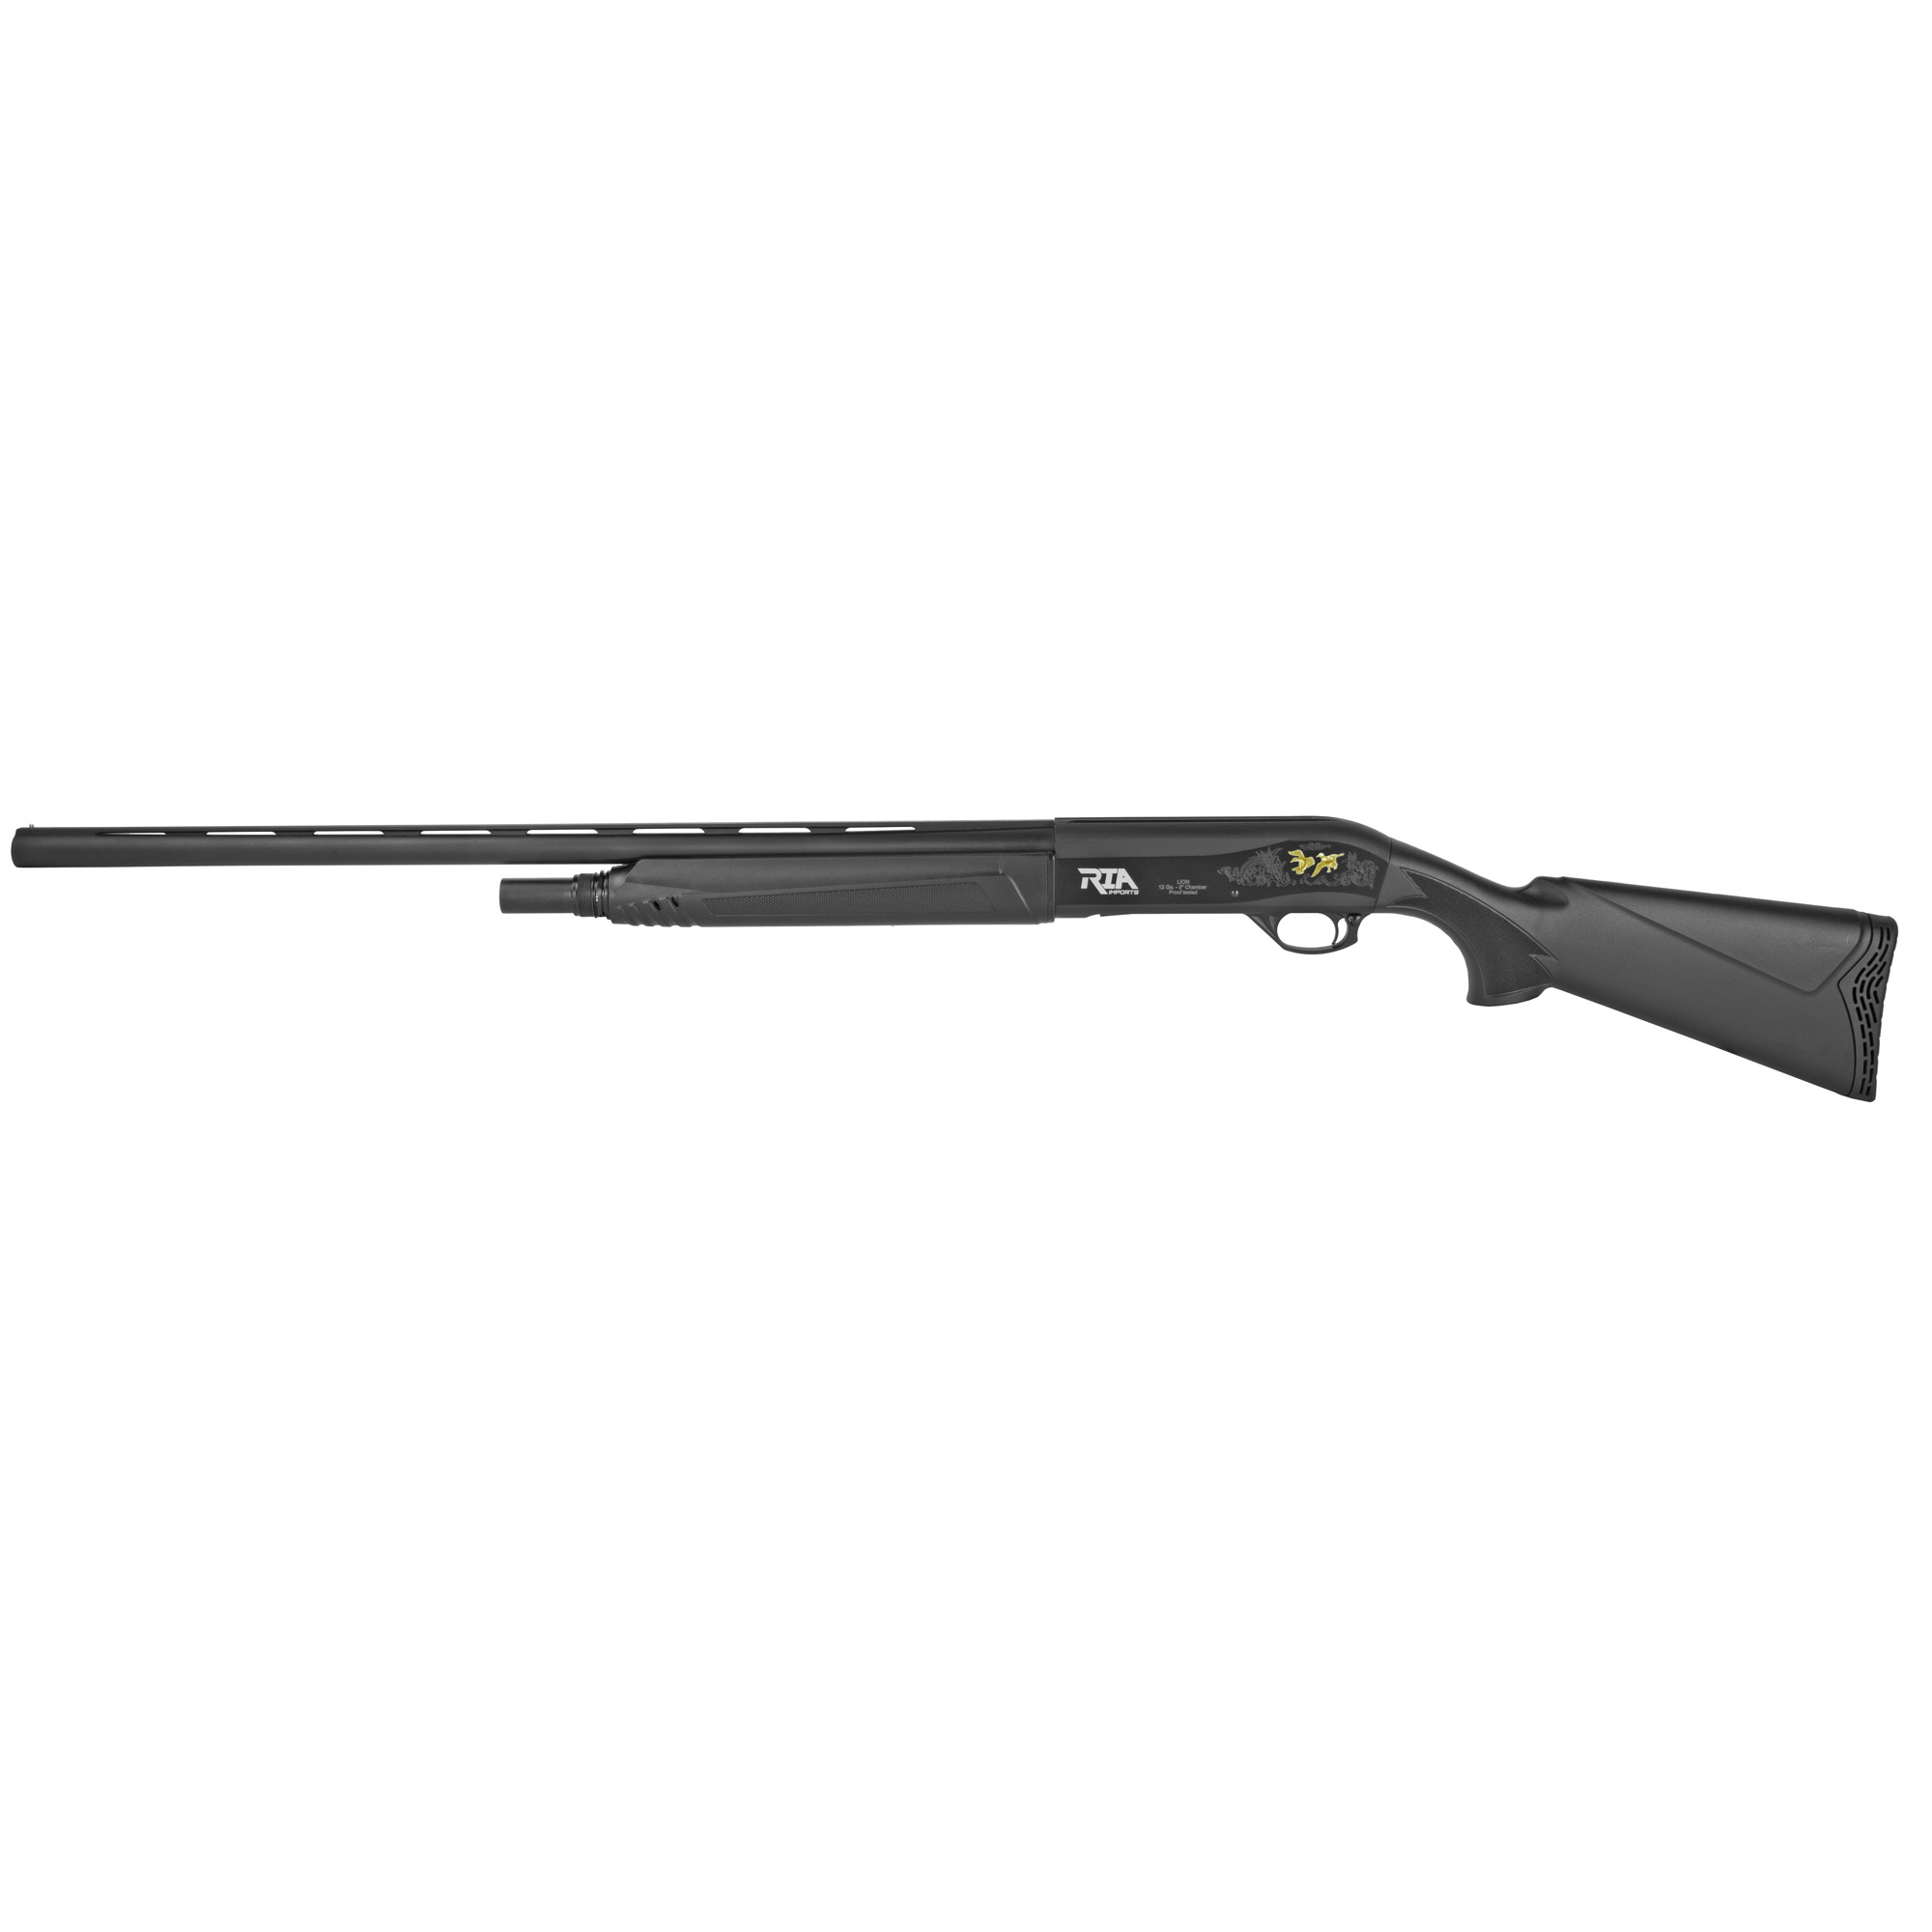 """The P-100 is a semi-automatic shotgun that features a 28"""" barrel"""" synthetic stock"""" black anodized finish and a 3"""" chamber."""